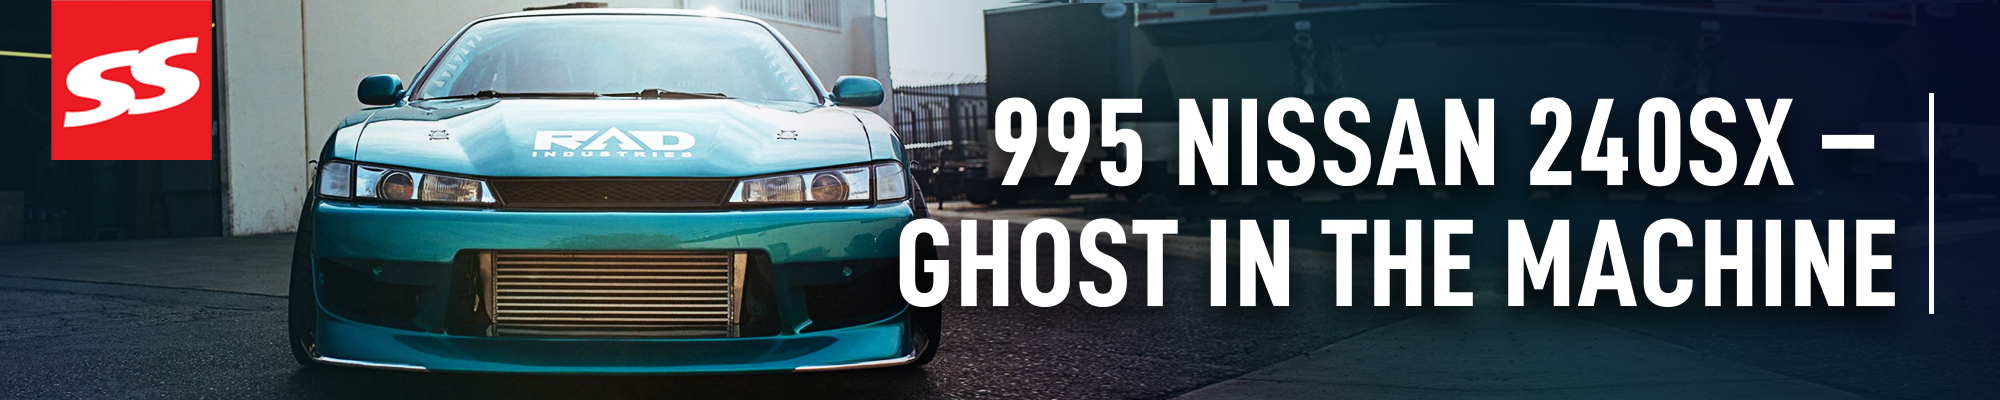 SUPER STREET ONLINE: 1995 Nissan 240SX - Ghost In The Machine